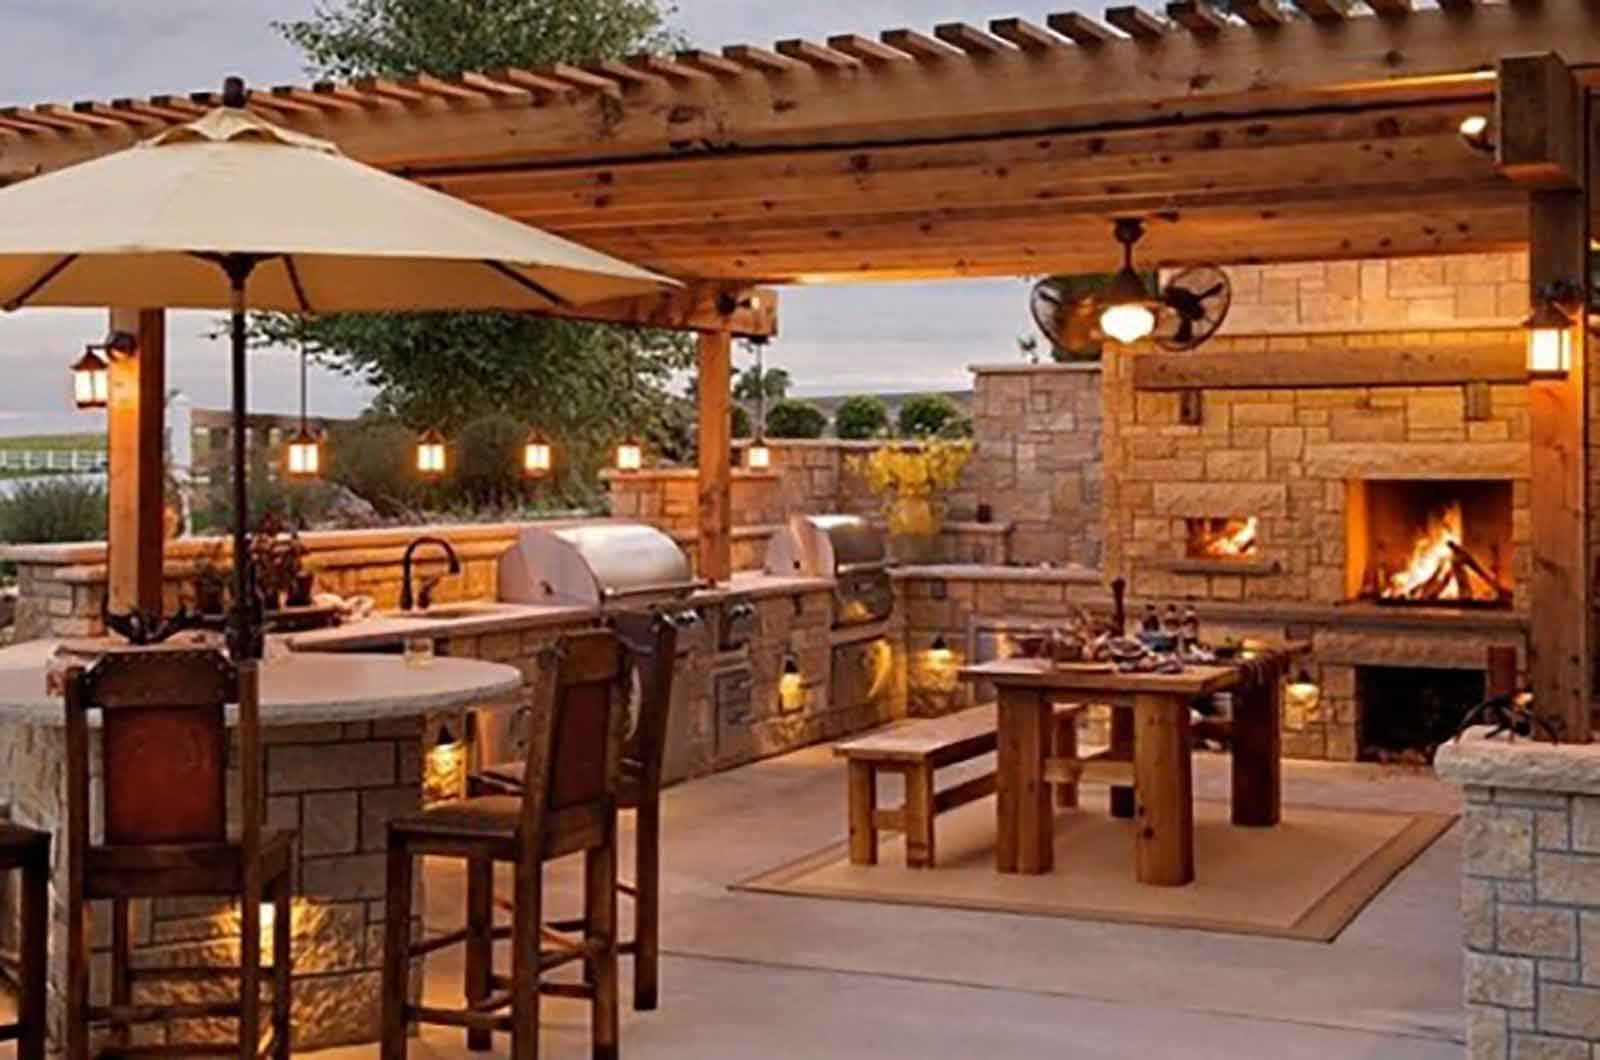 Beautiful outdoor kitchen with built-in BBQ and spacious eating area